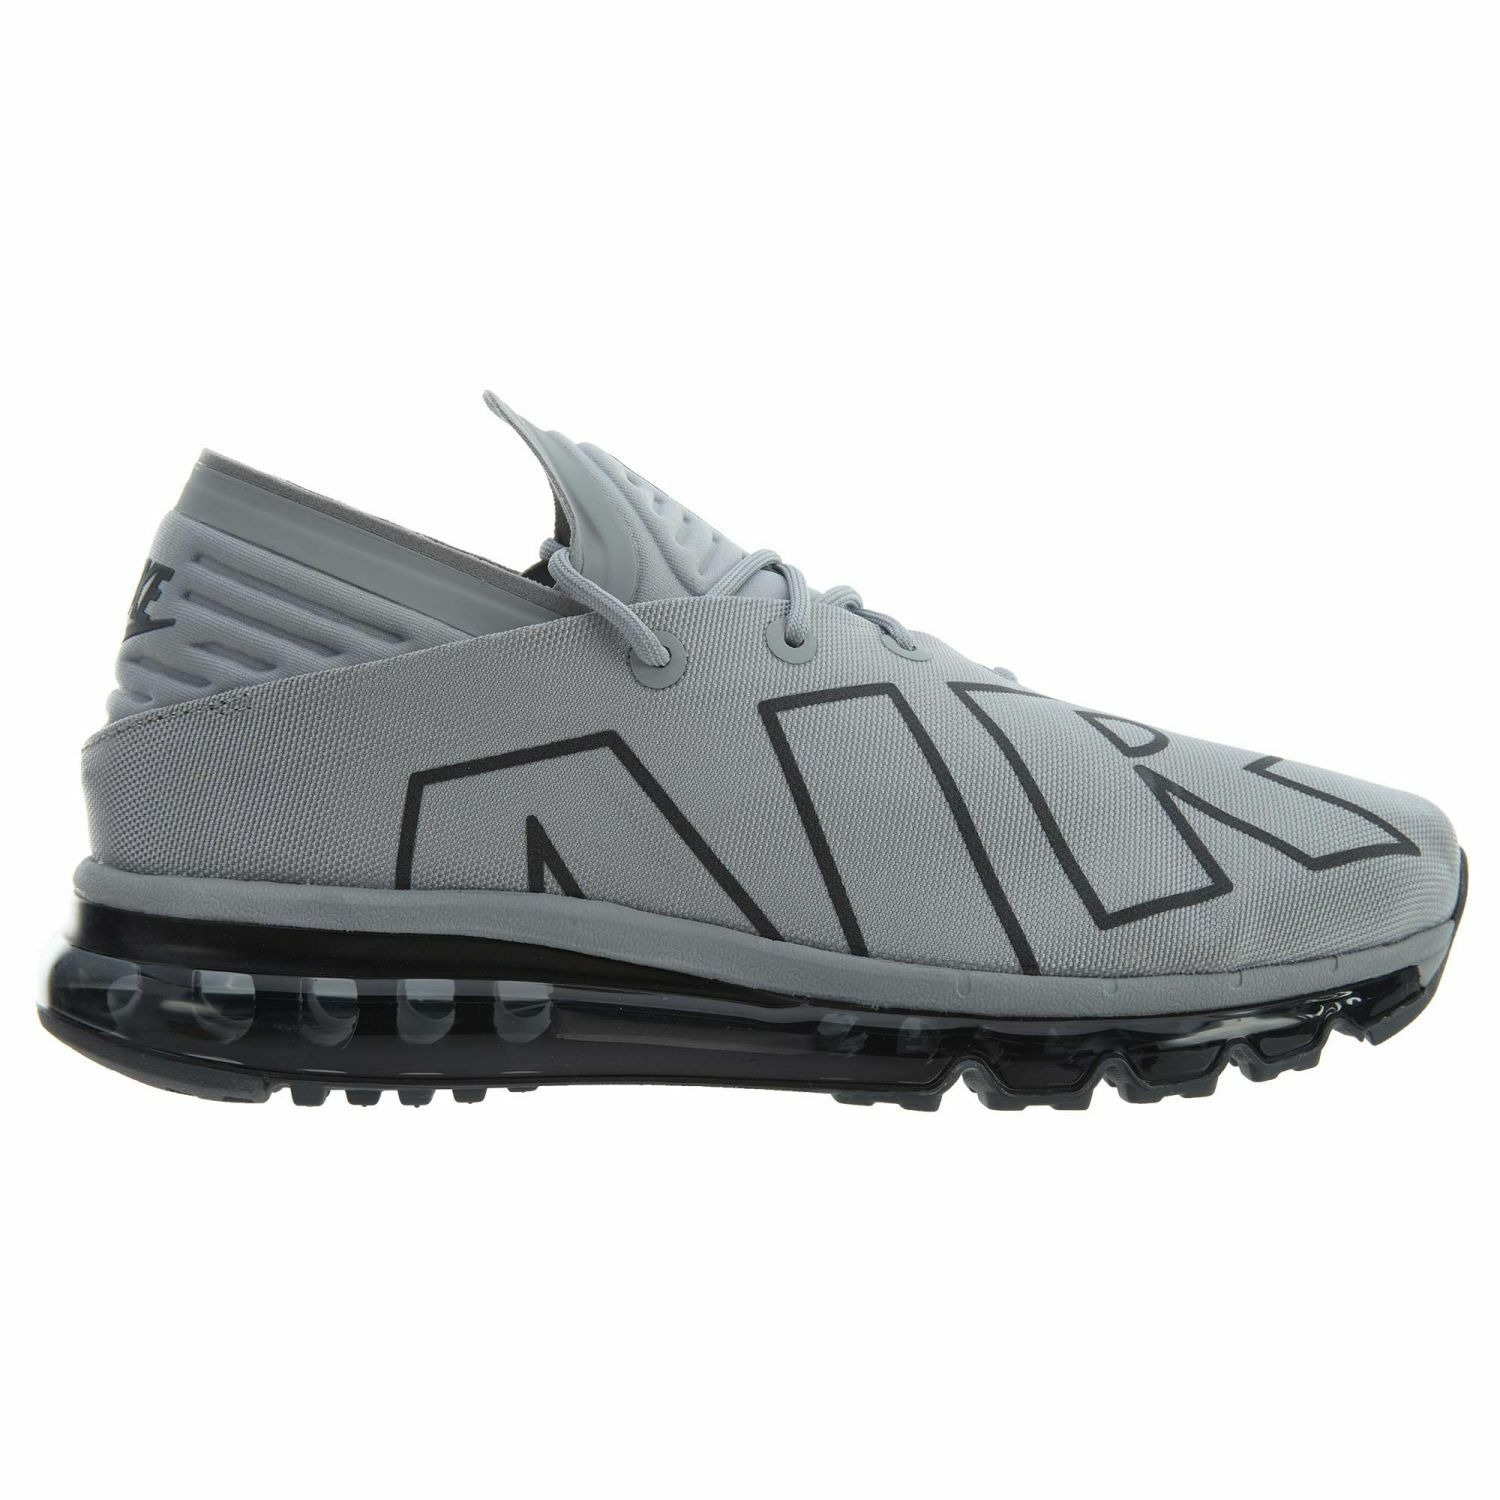 Nike Air Max Flair SE Mens AA4084-002 Dark Wolf Grey Running shoes Size 8.5